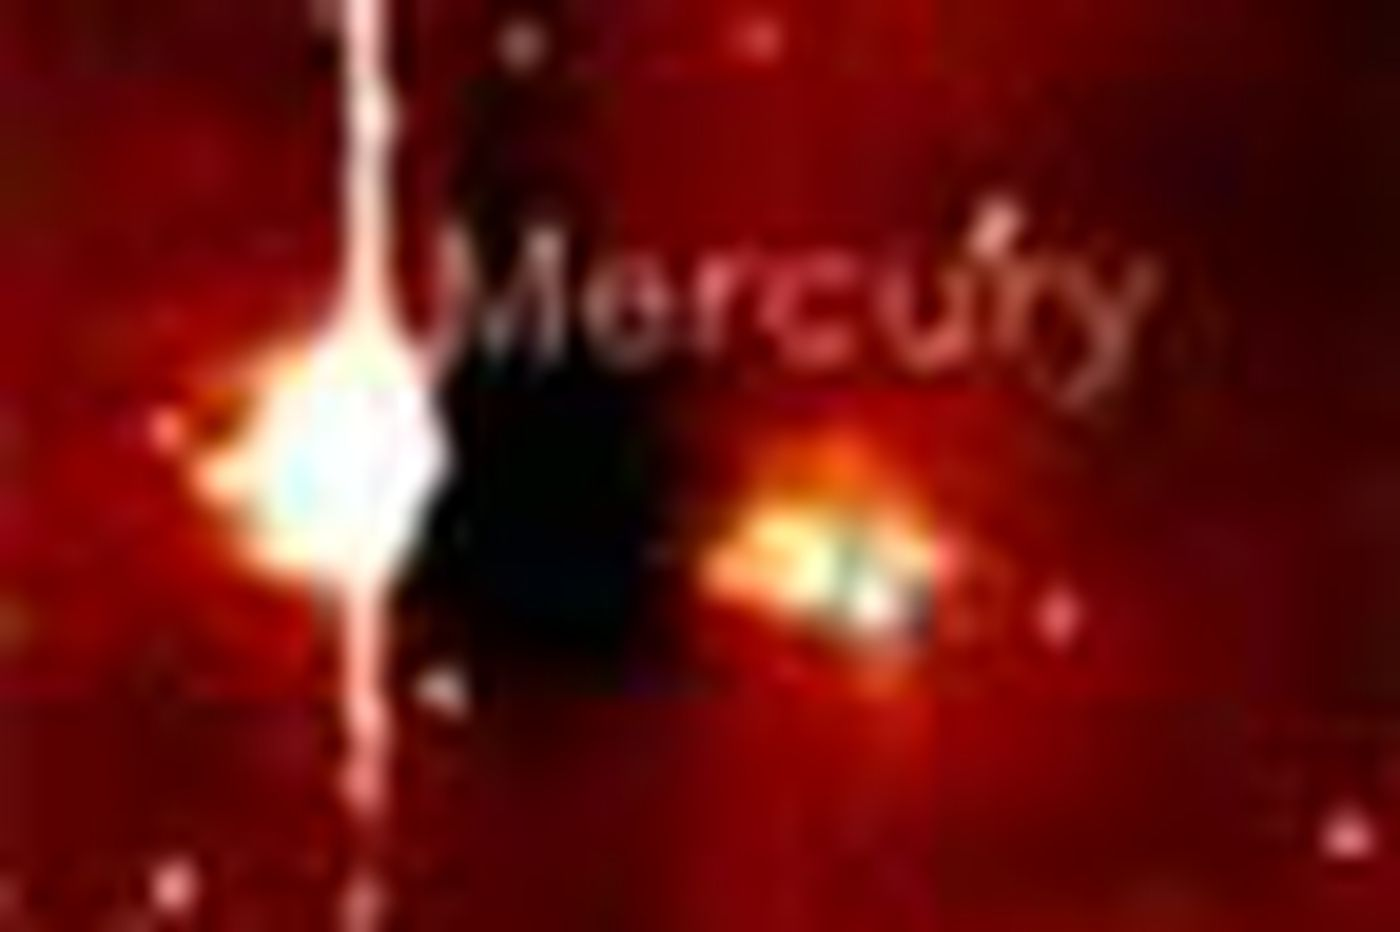 Cloaked alien spaceship appears in video of Mercury?